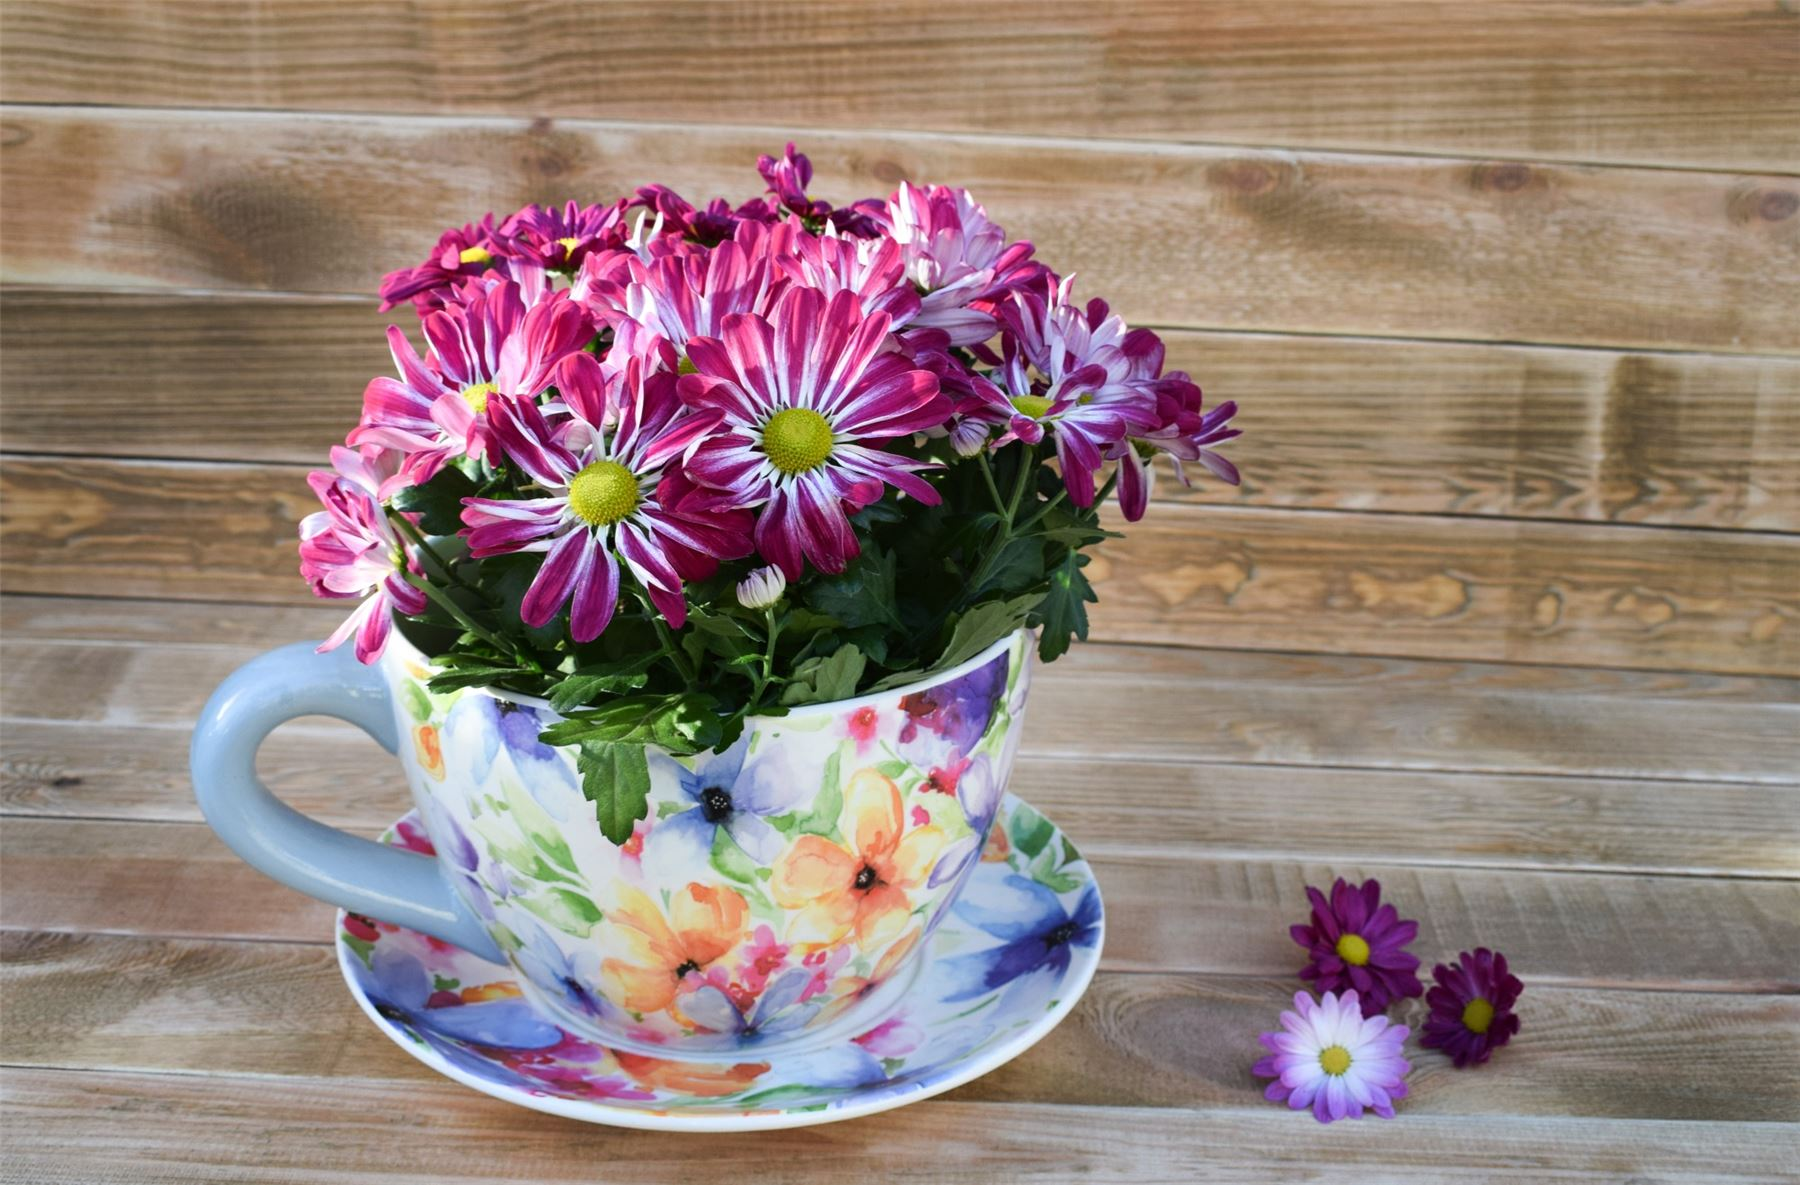 Large Tea Cup Planter Details About Large Teacup Planter Plant Pot Flower Floral Coastal Designs 25cm Ivyline